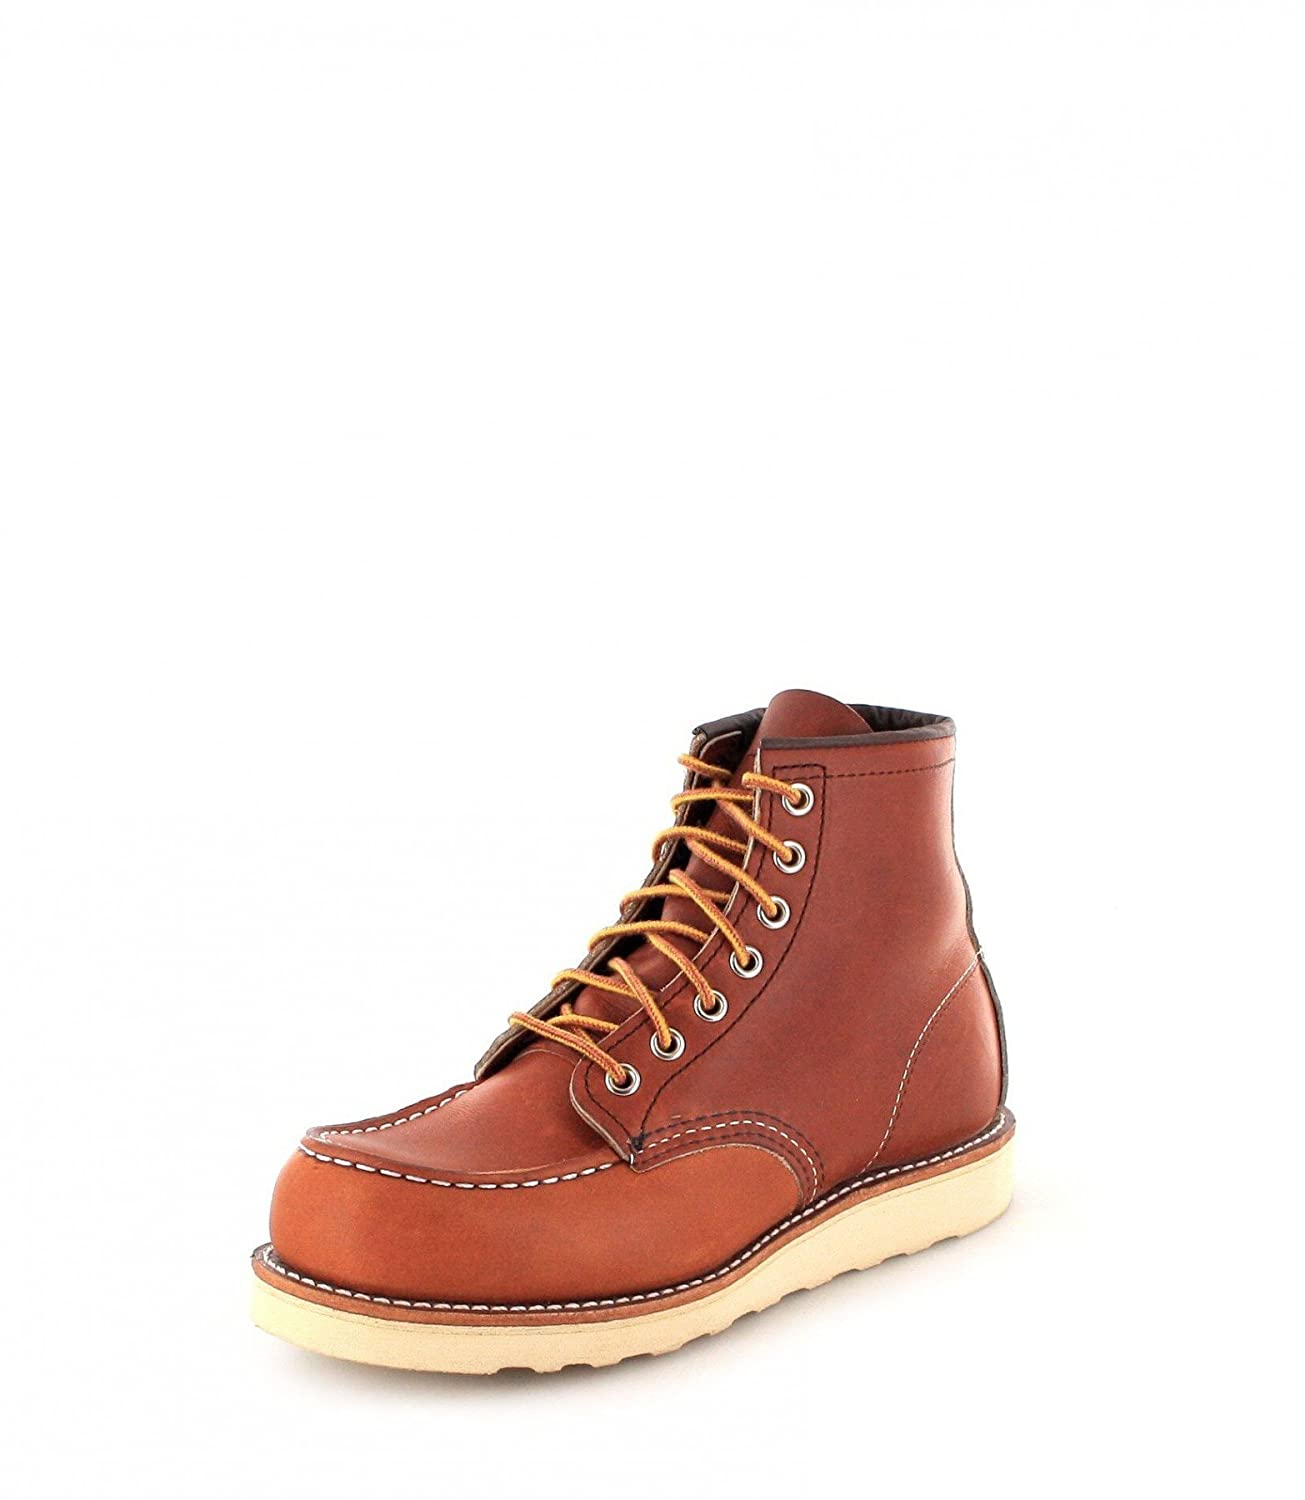 Red Wing Shoes Hombres Oro Legacy 6-Inch Moc Toe Botas 45 EU